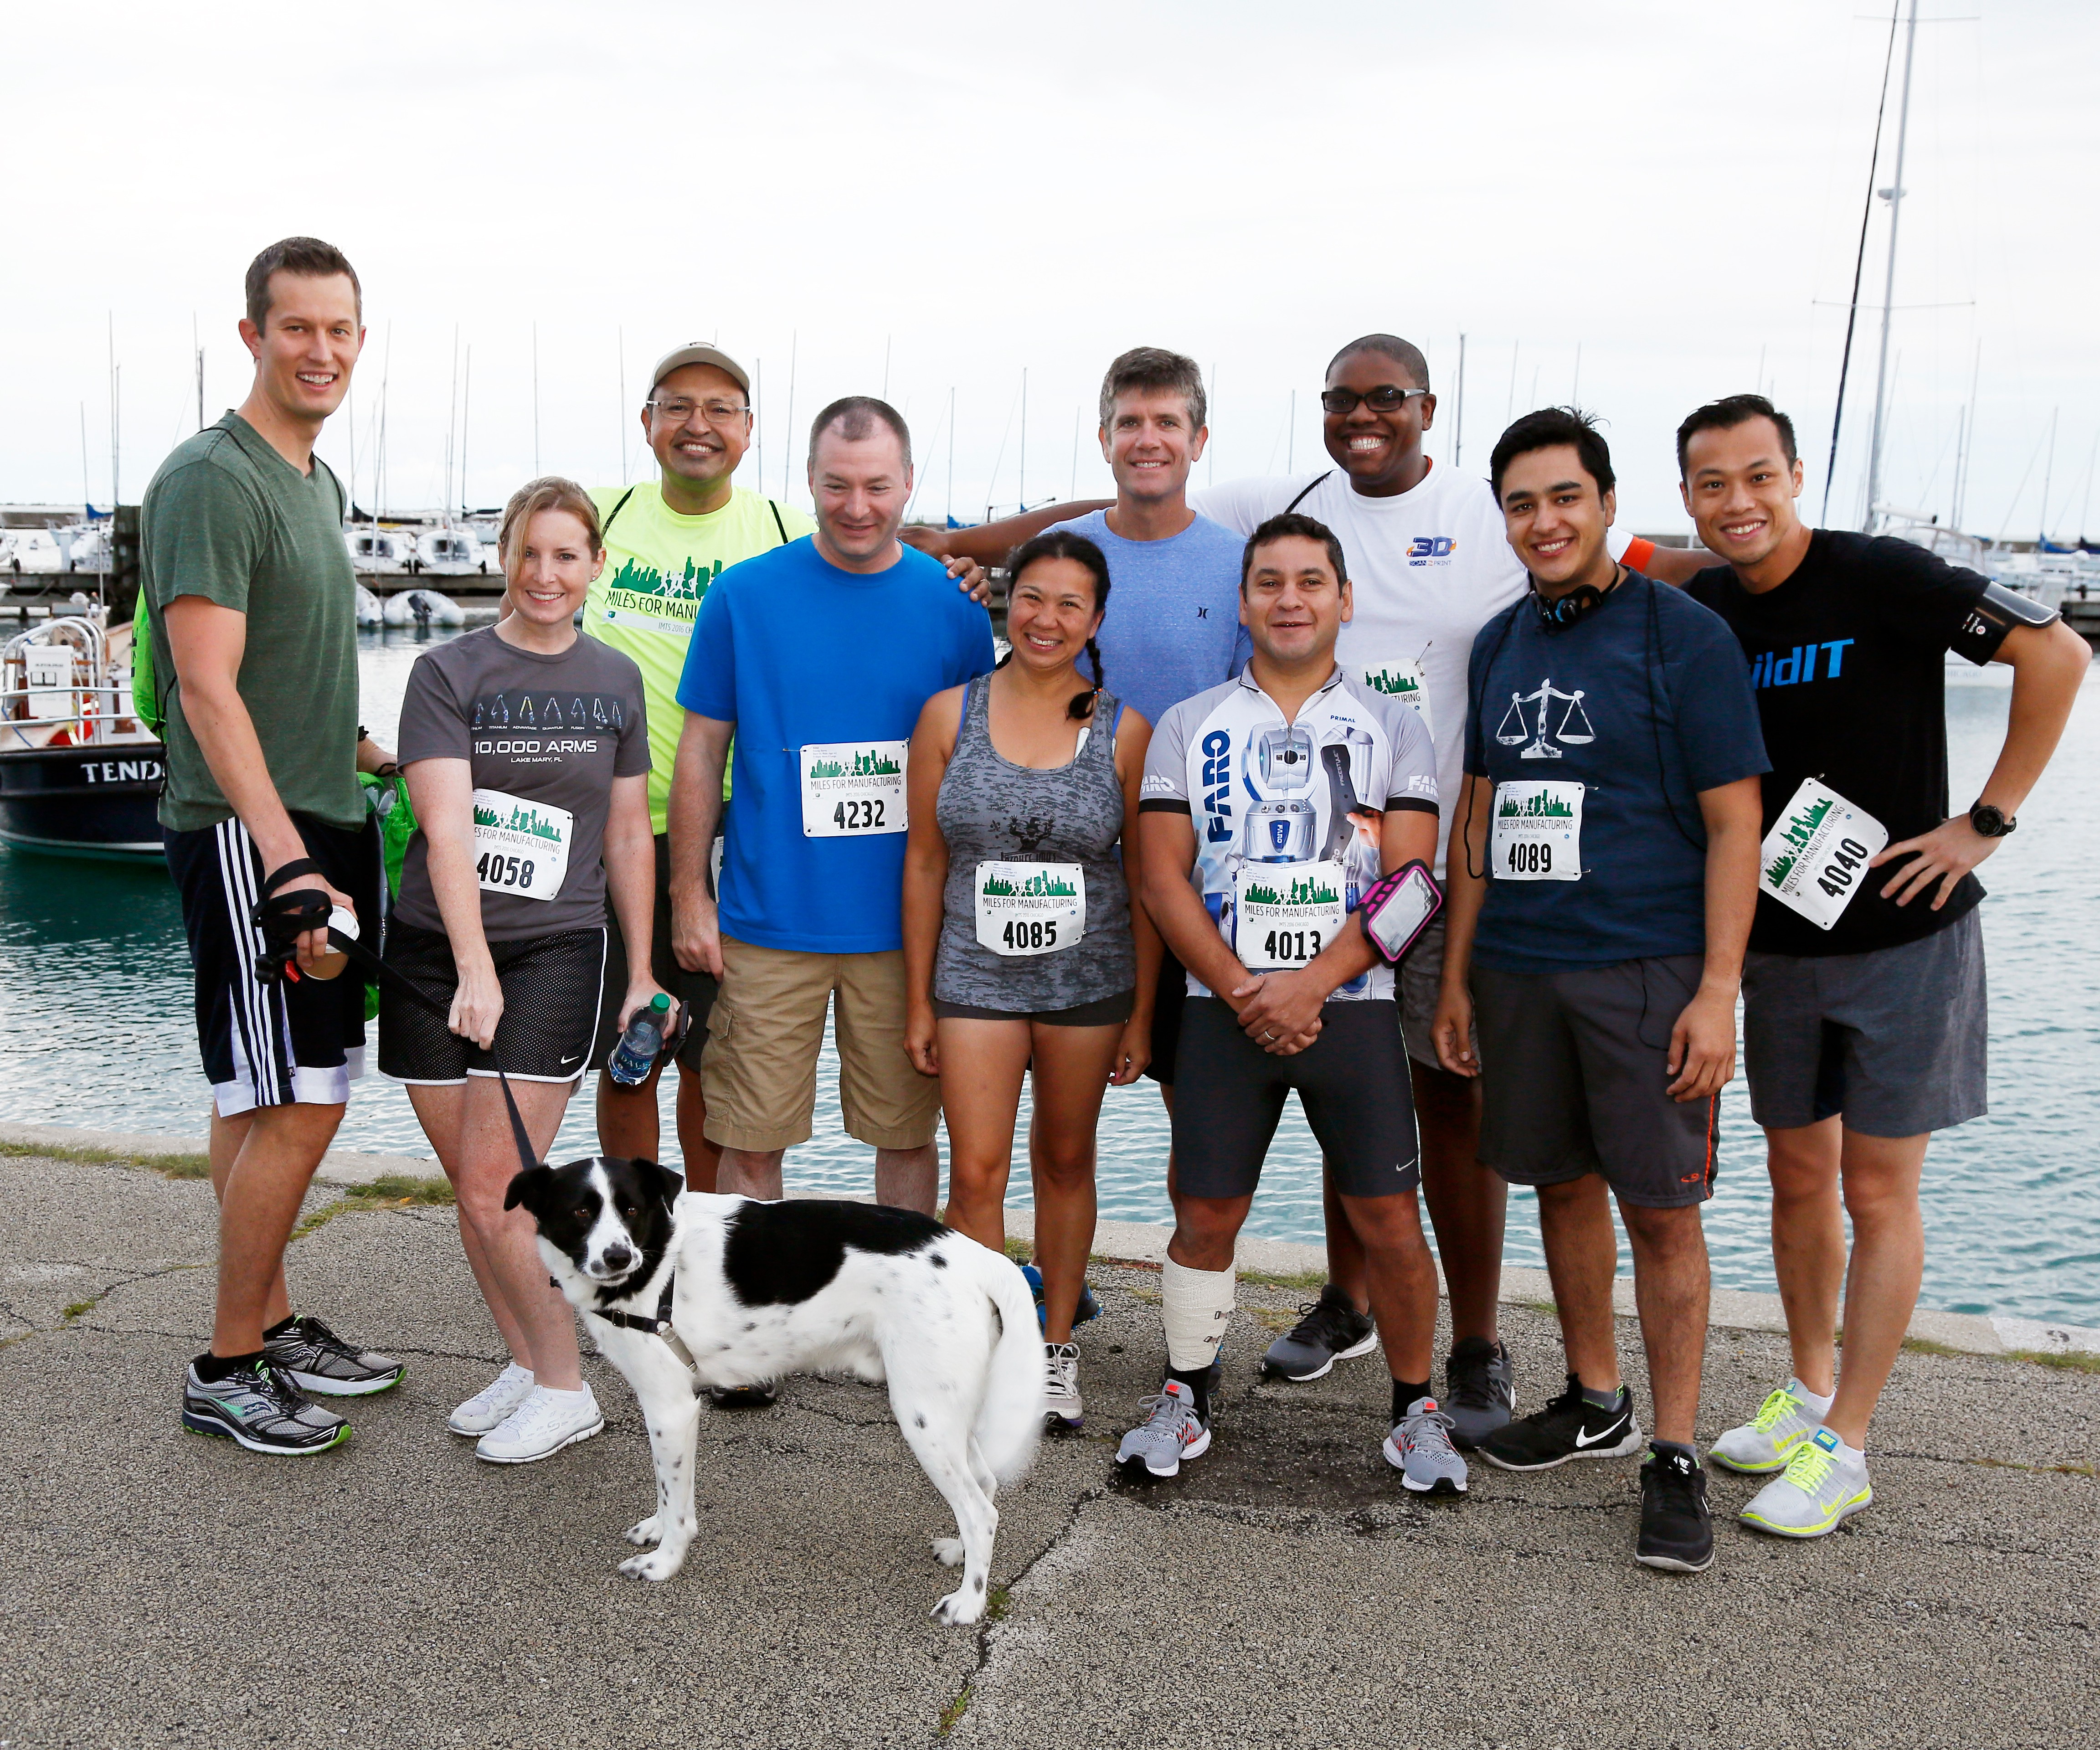 Runners posing before Miles for Manufacturing 5K